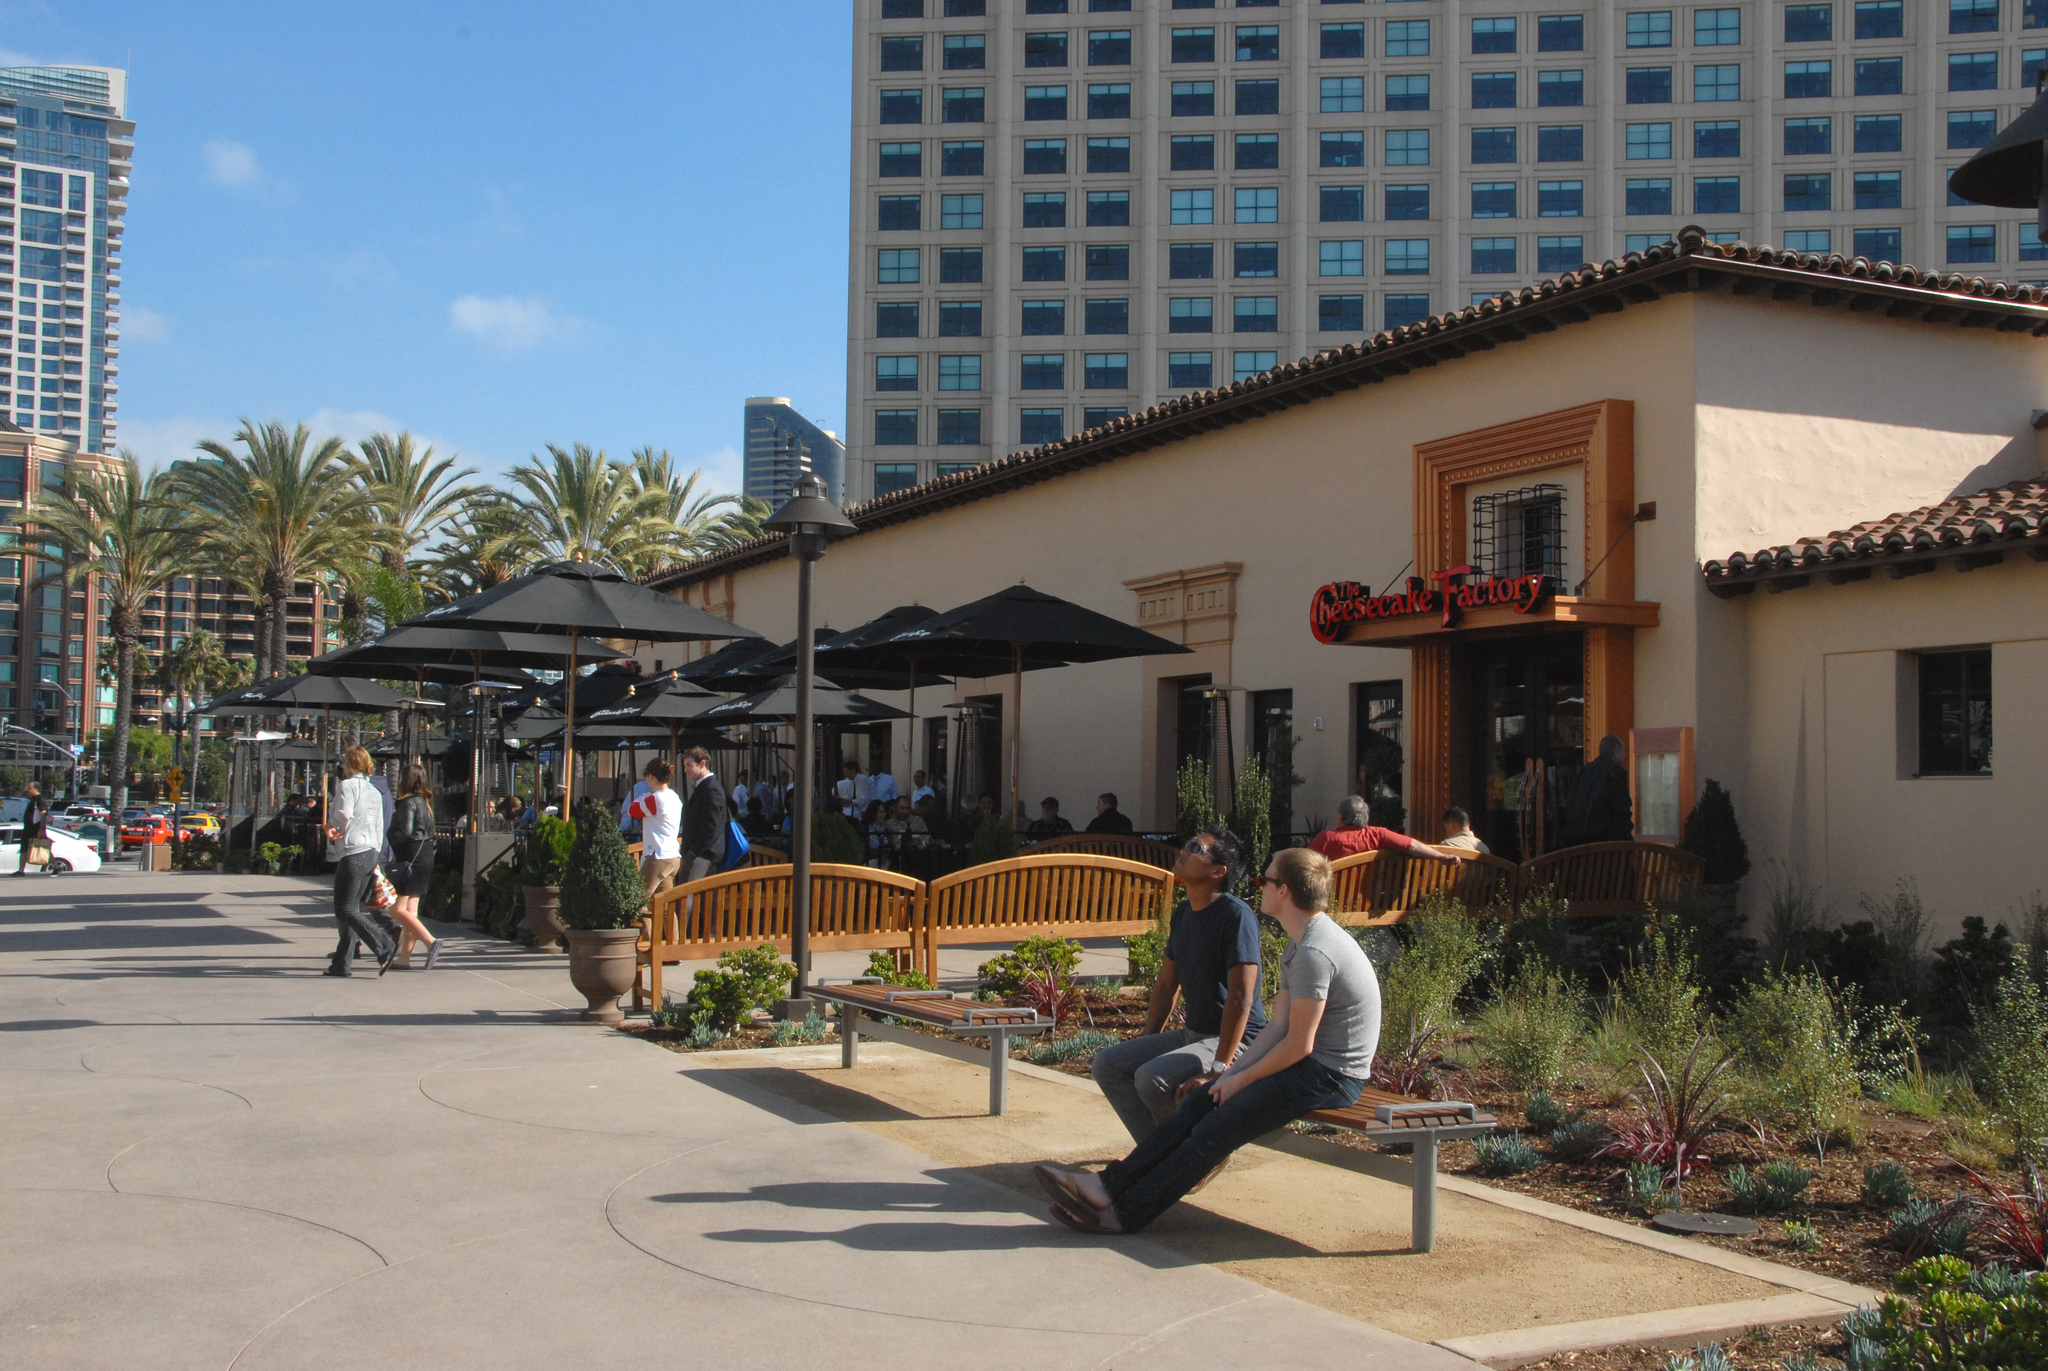 valentines day speed dating san diego We have speed dating atlanta events, speed dating raleigh events, speed dating san diego events, speed dating san francisco events, speed dating san jose events, and speed dating seattle events our speed dating single's events tend to be the most popular speed dating events in those cities.